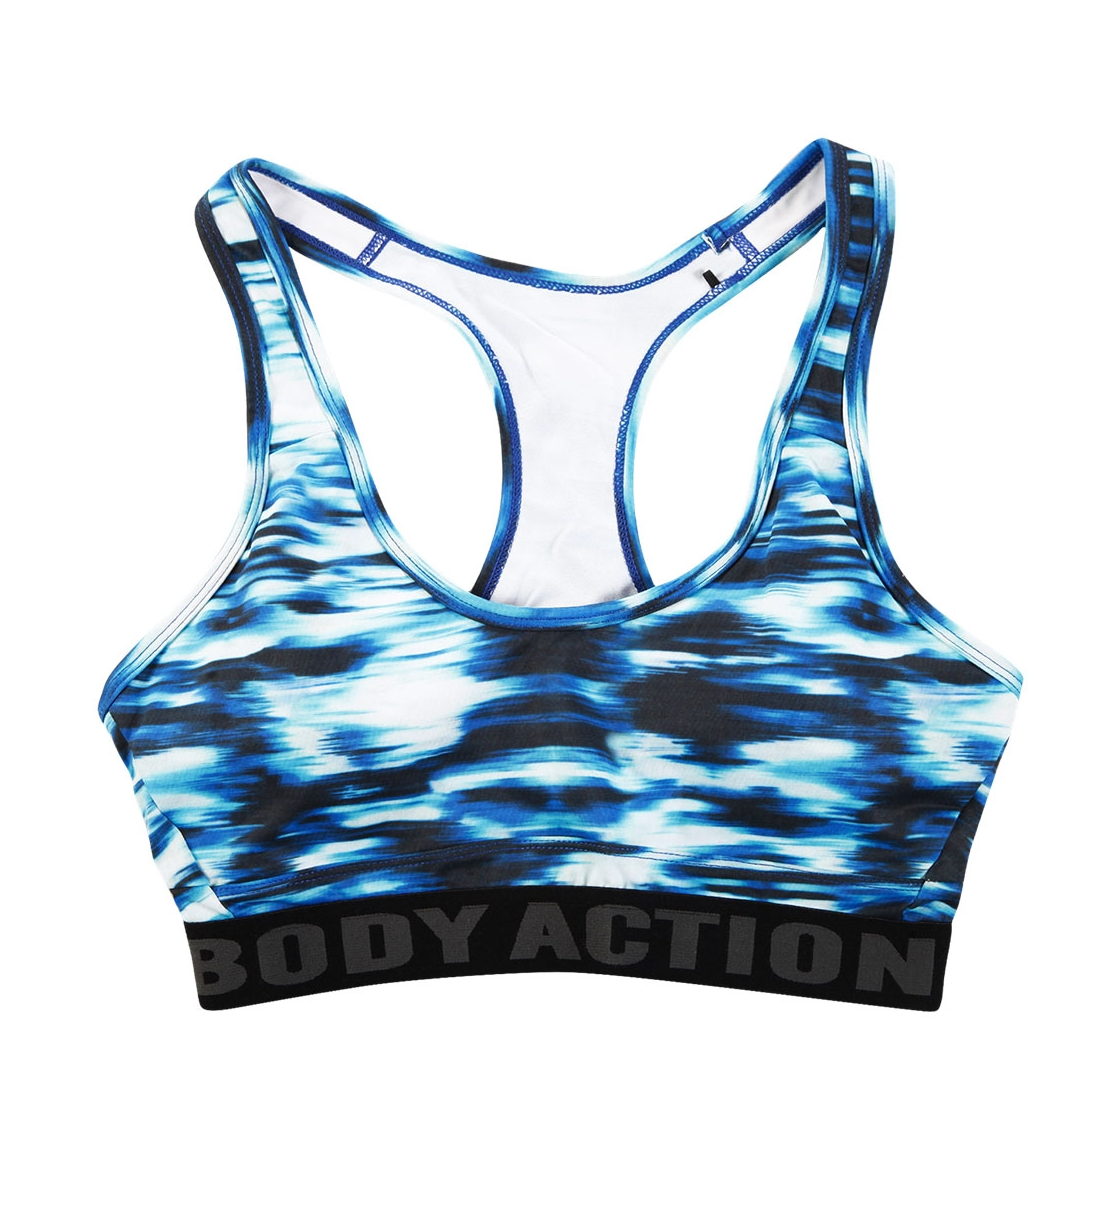 Body Action Women Racerback Sports Bra